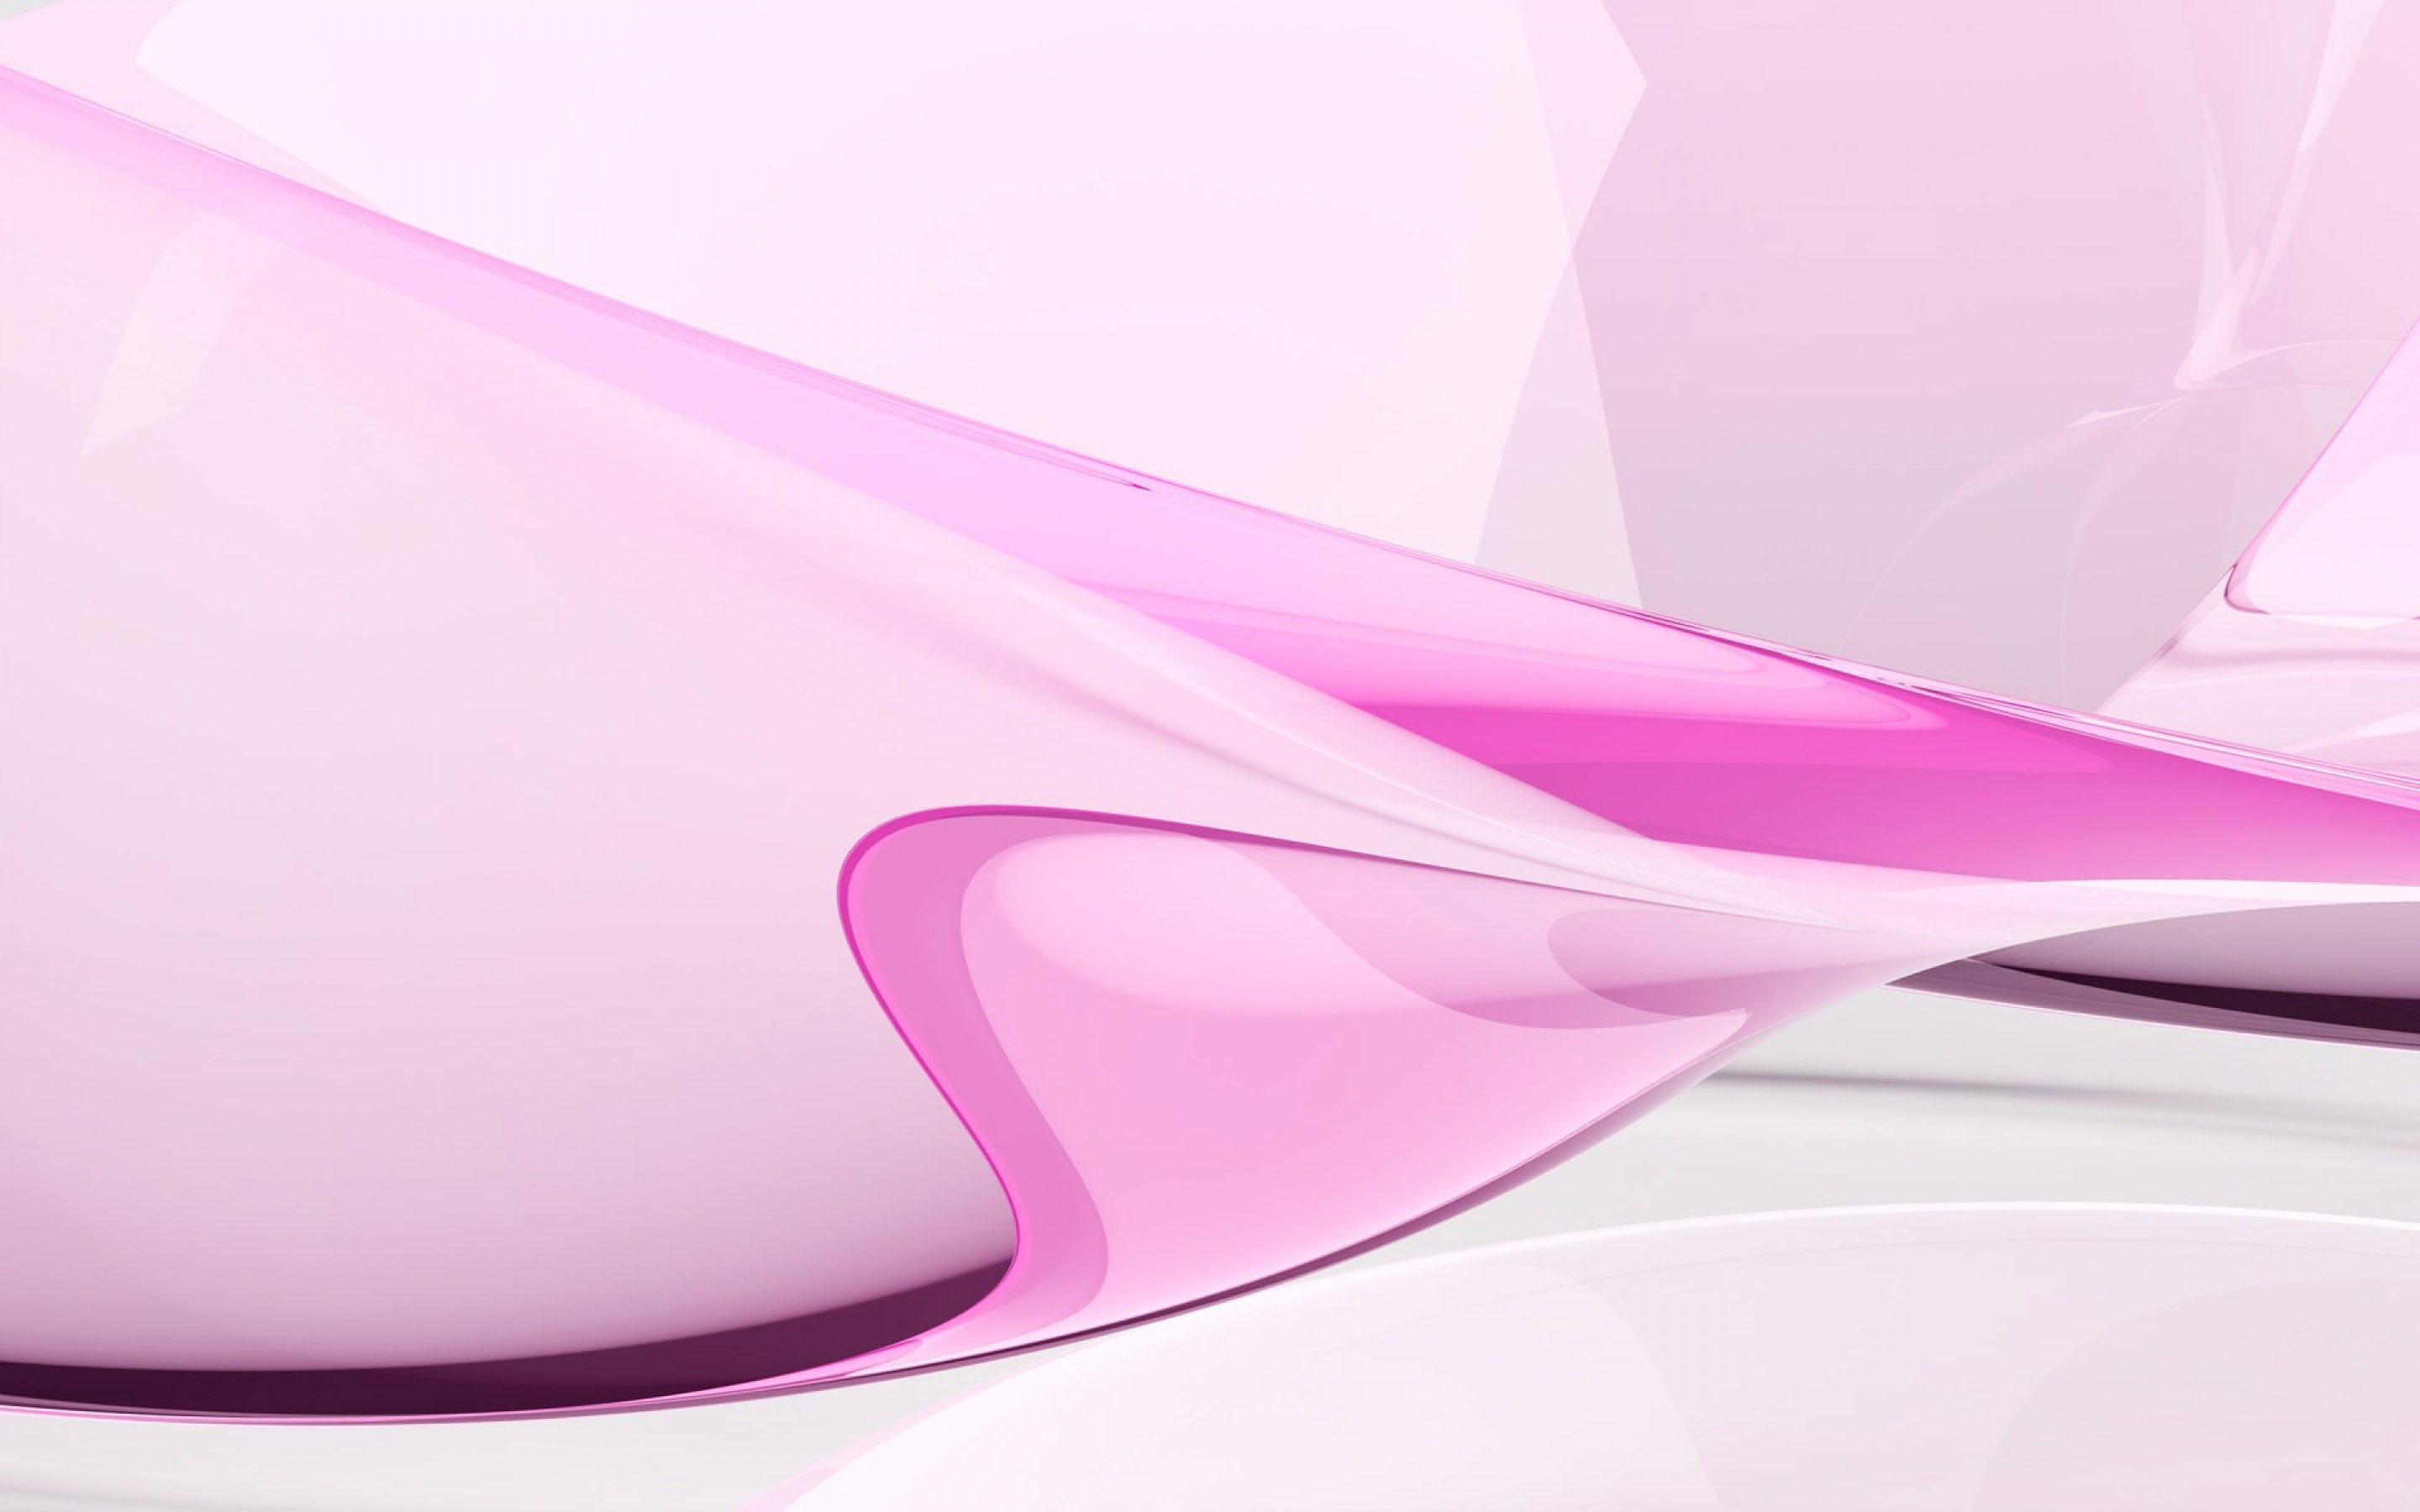 Curved lines pink abstract on light background